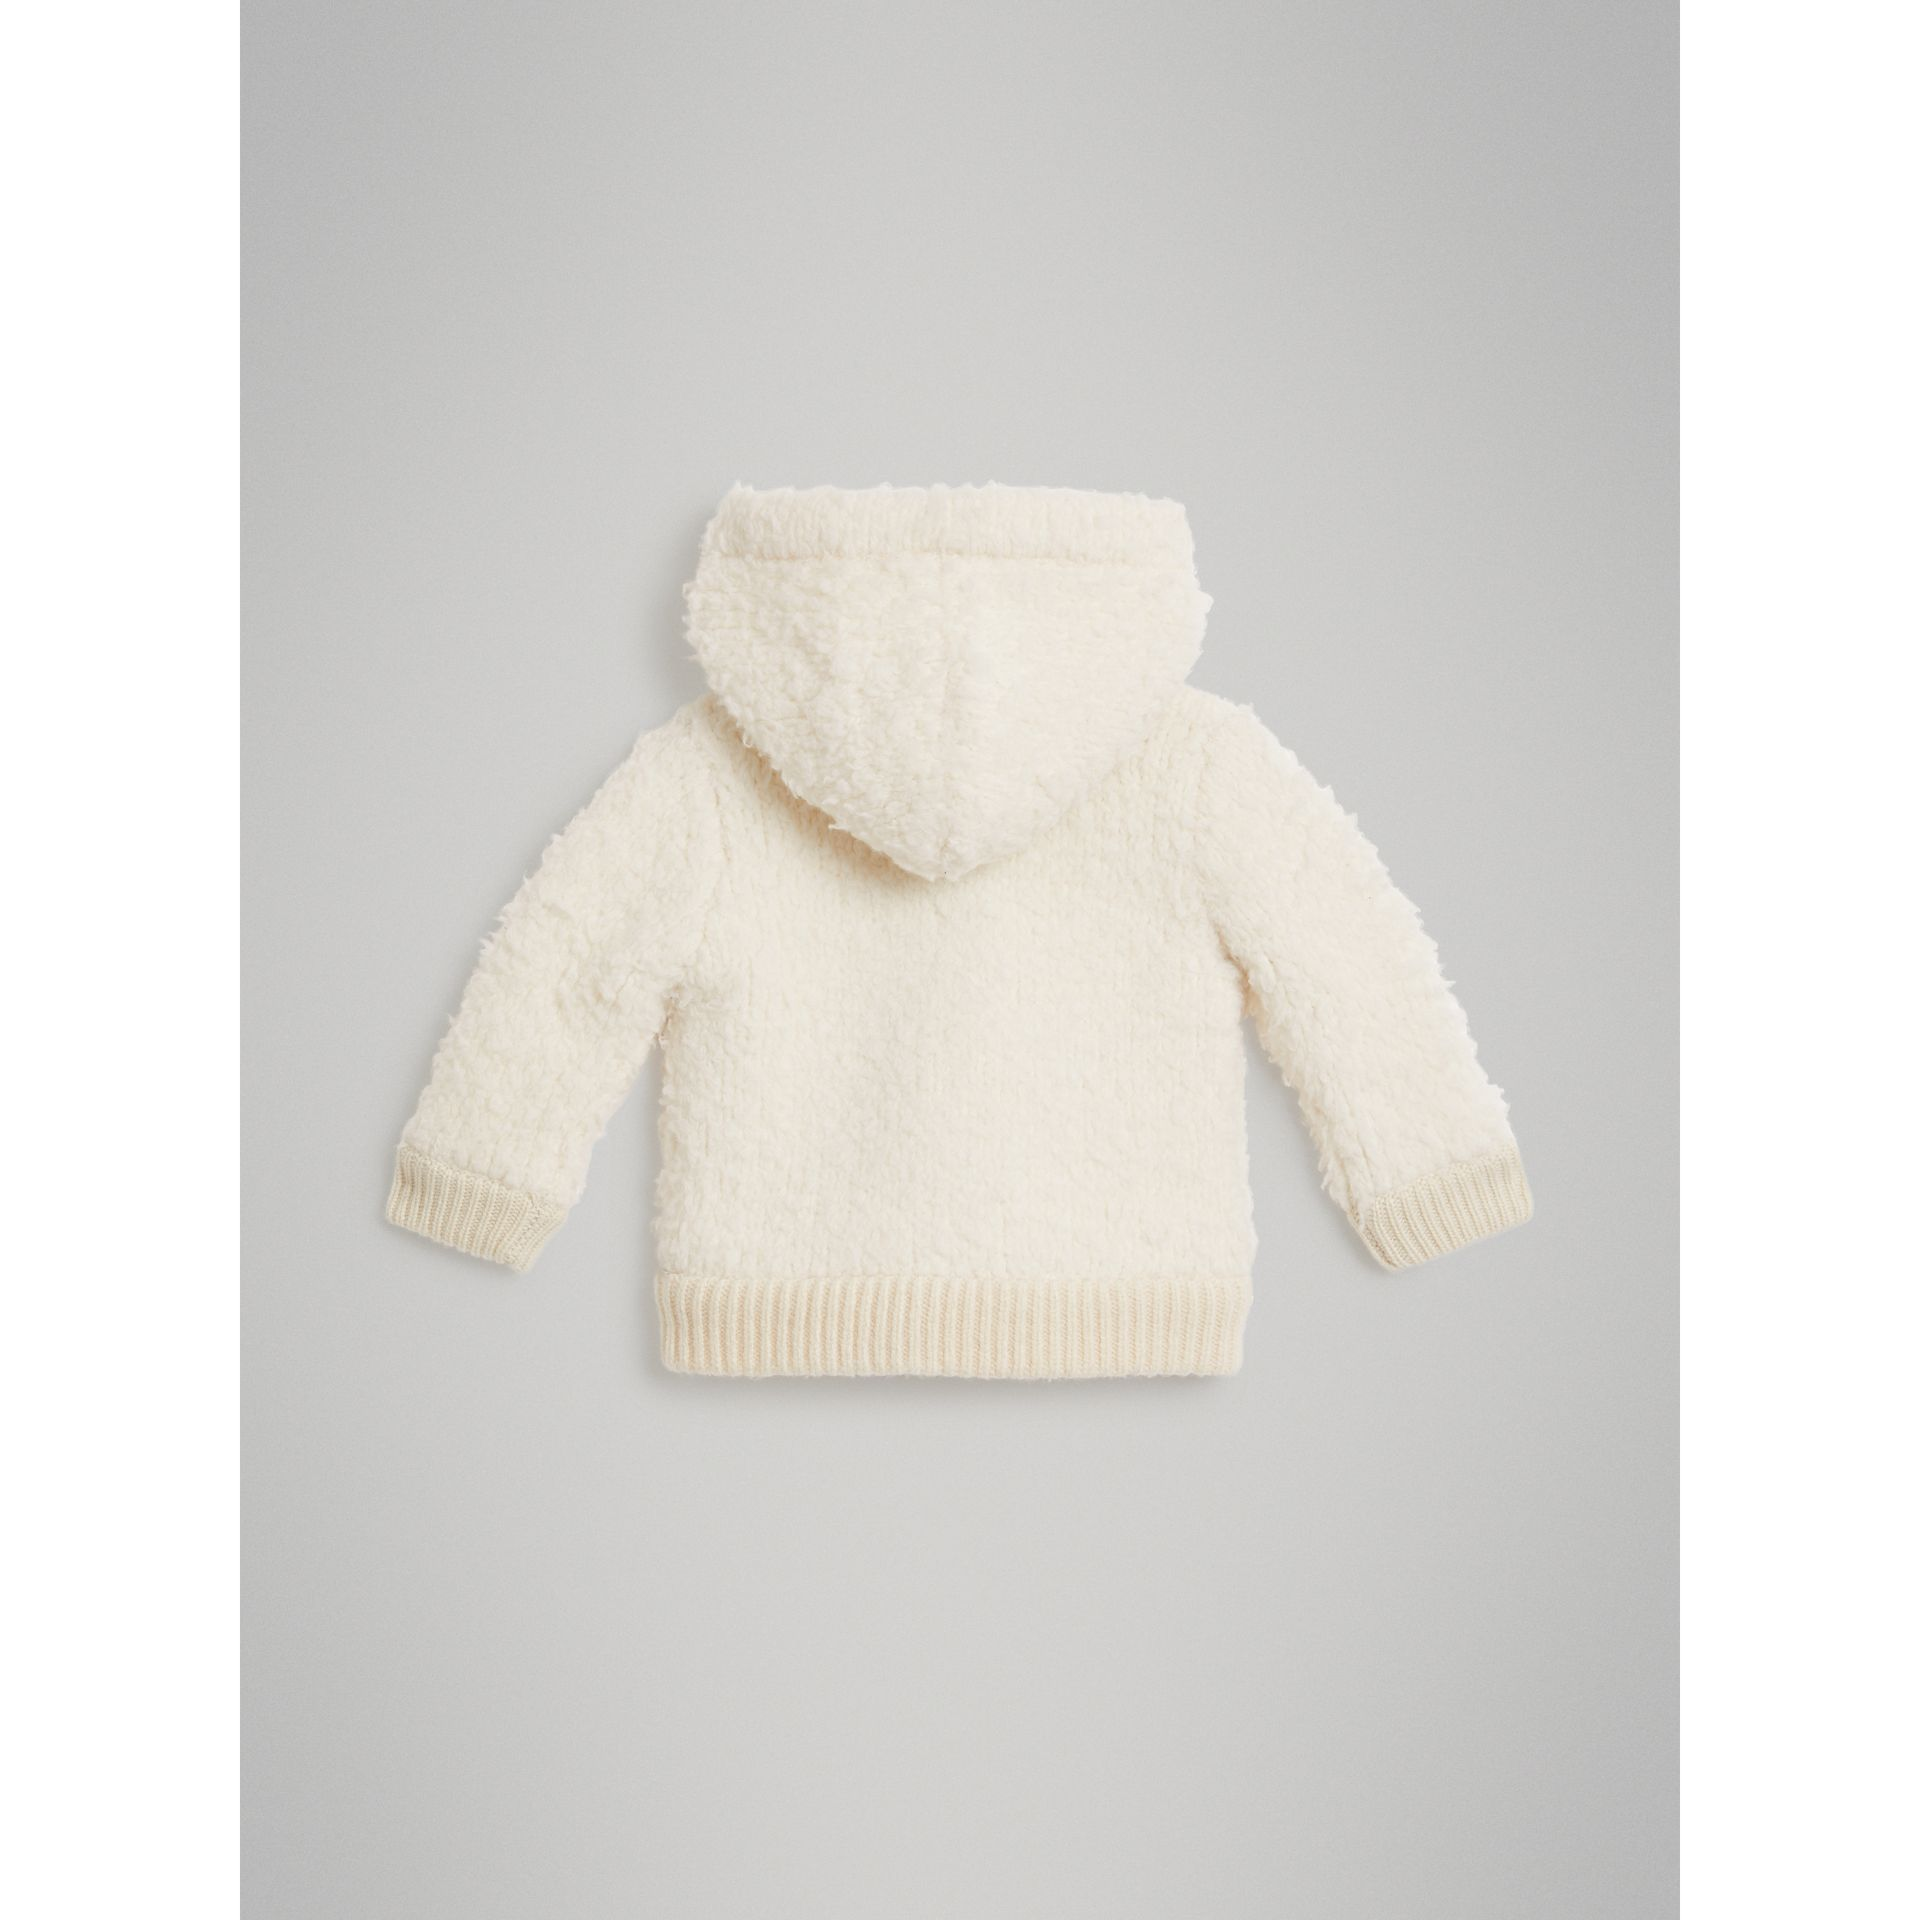 Wool Blend Hooded Top in Ivory - Children | Burberry United Kingdom - gallery image 3